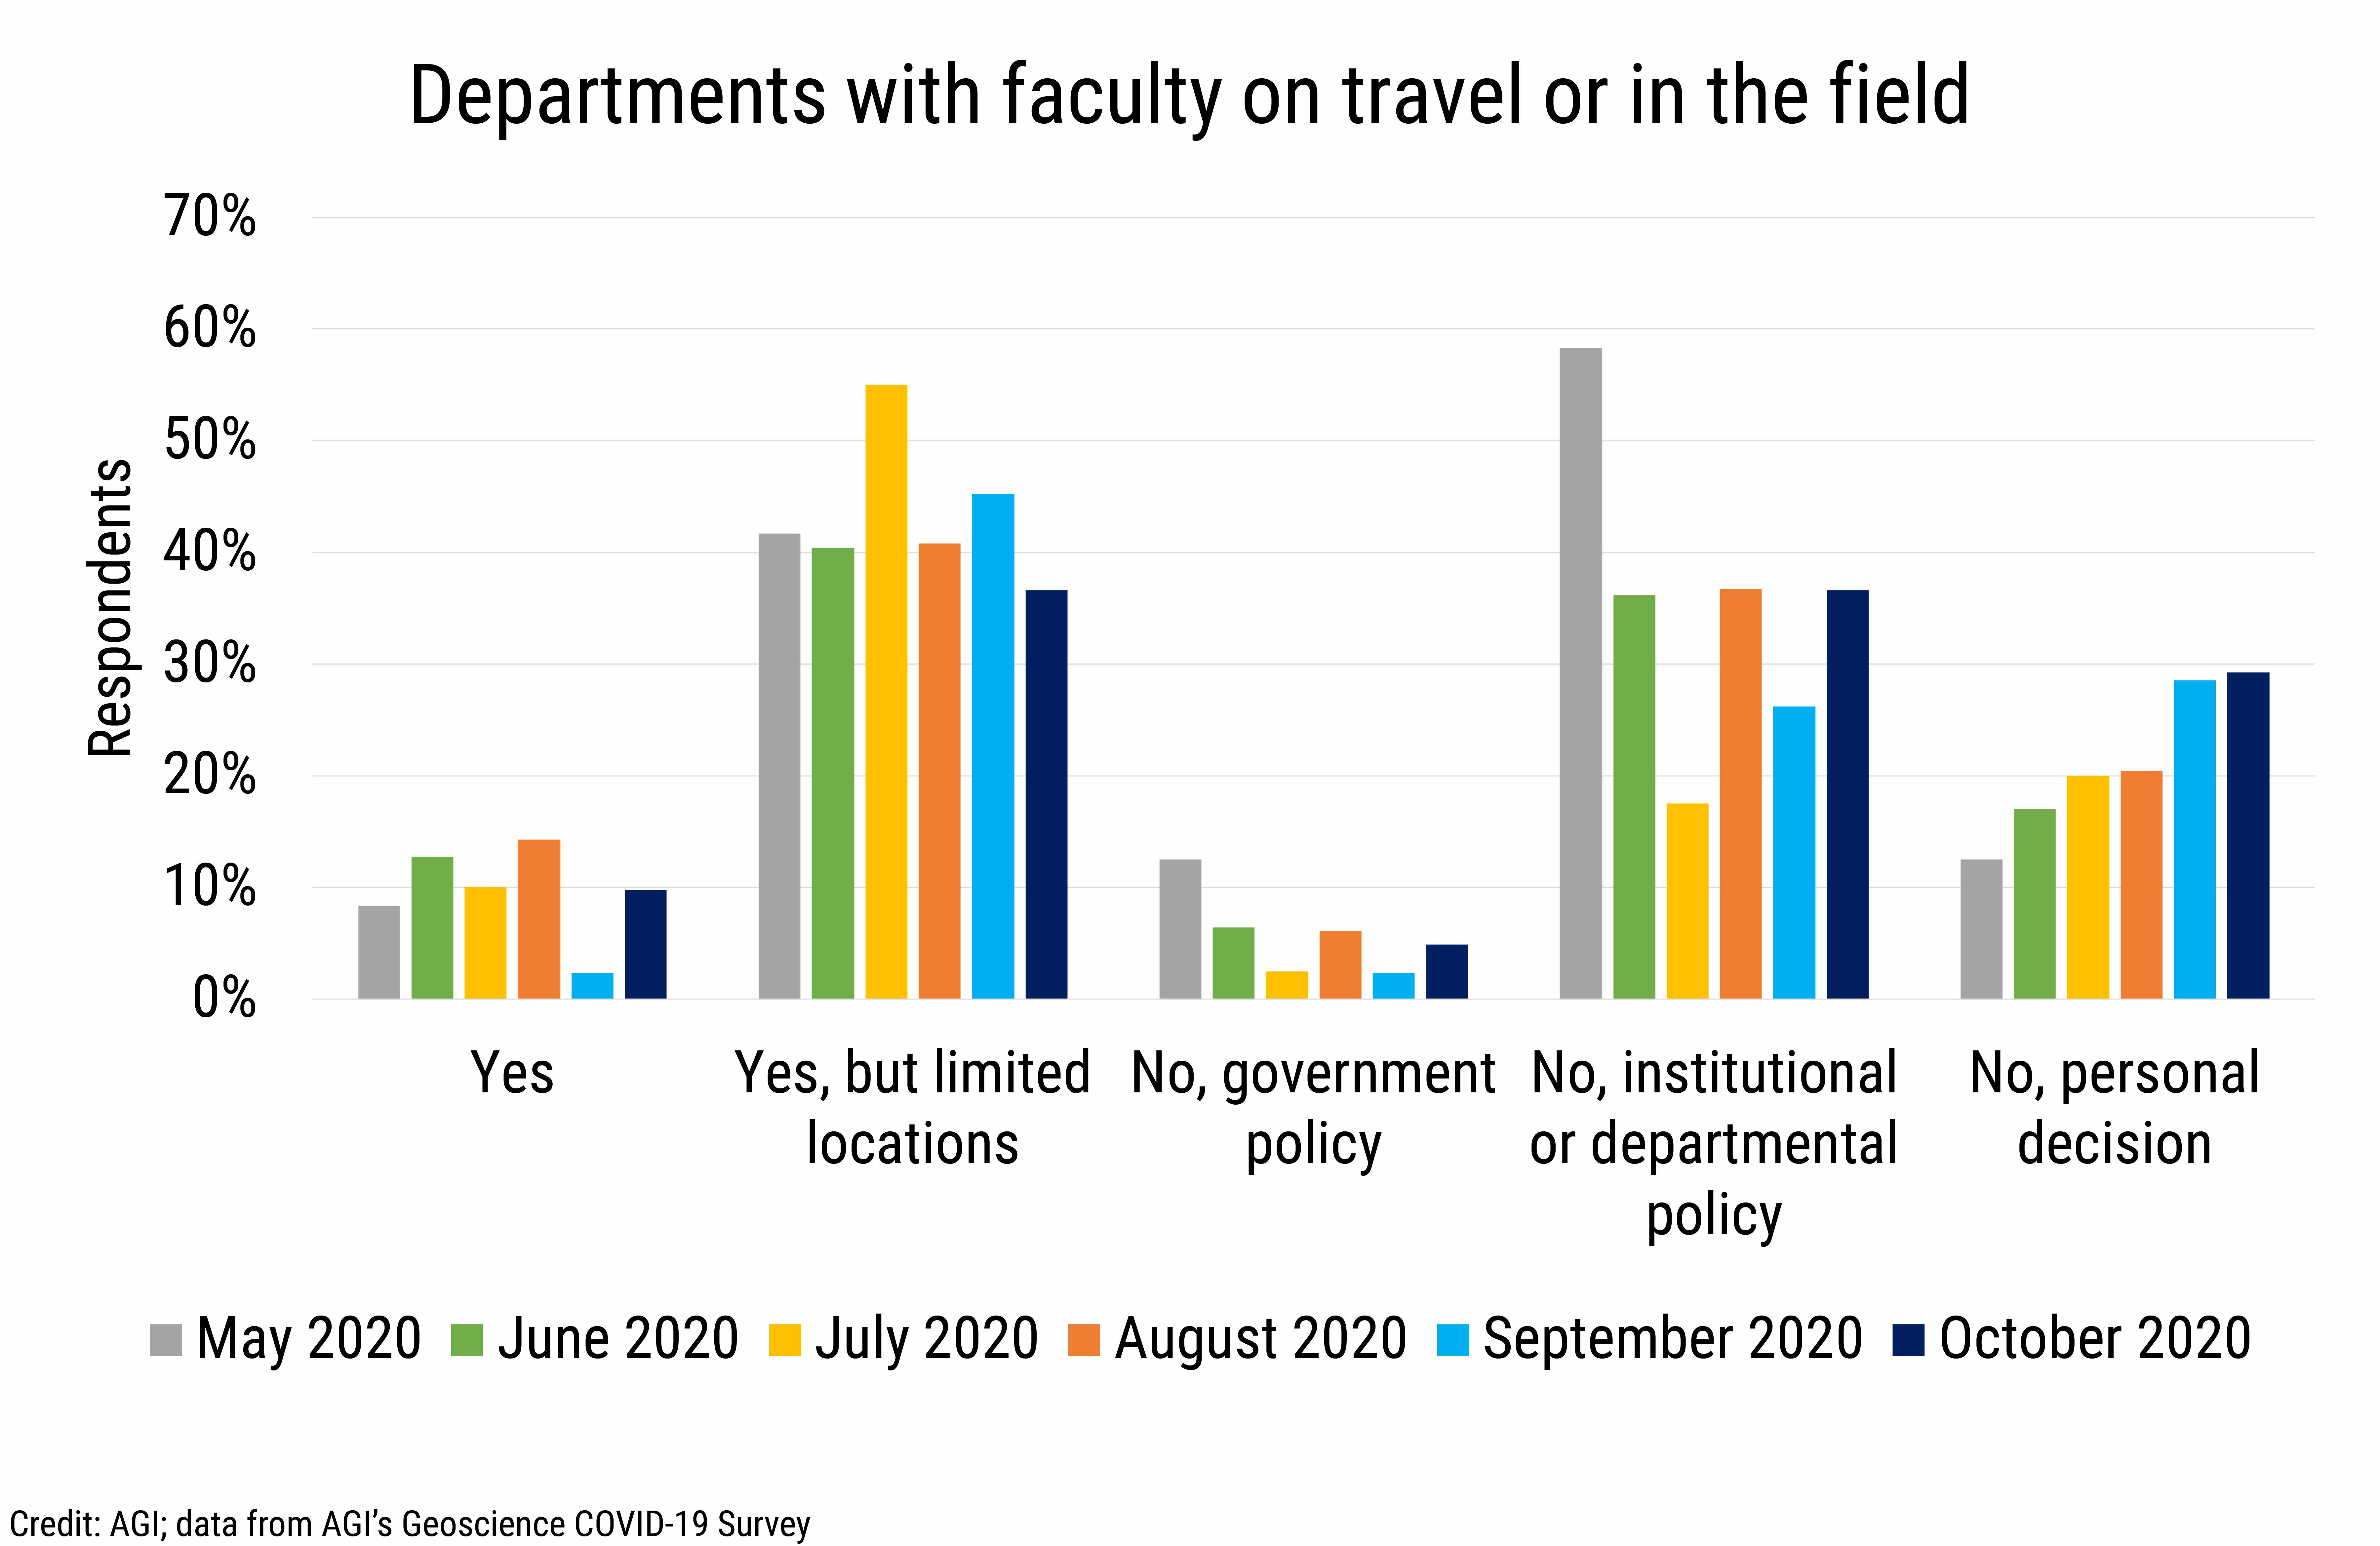 DB_2020-028 chart 03:  Depatments with faculty on travel or in the field (Credit: AGI; data from AGI's Geoscience COVID-19 Survey)